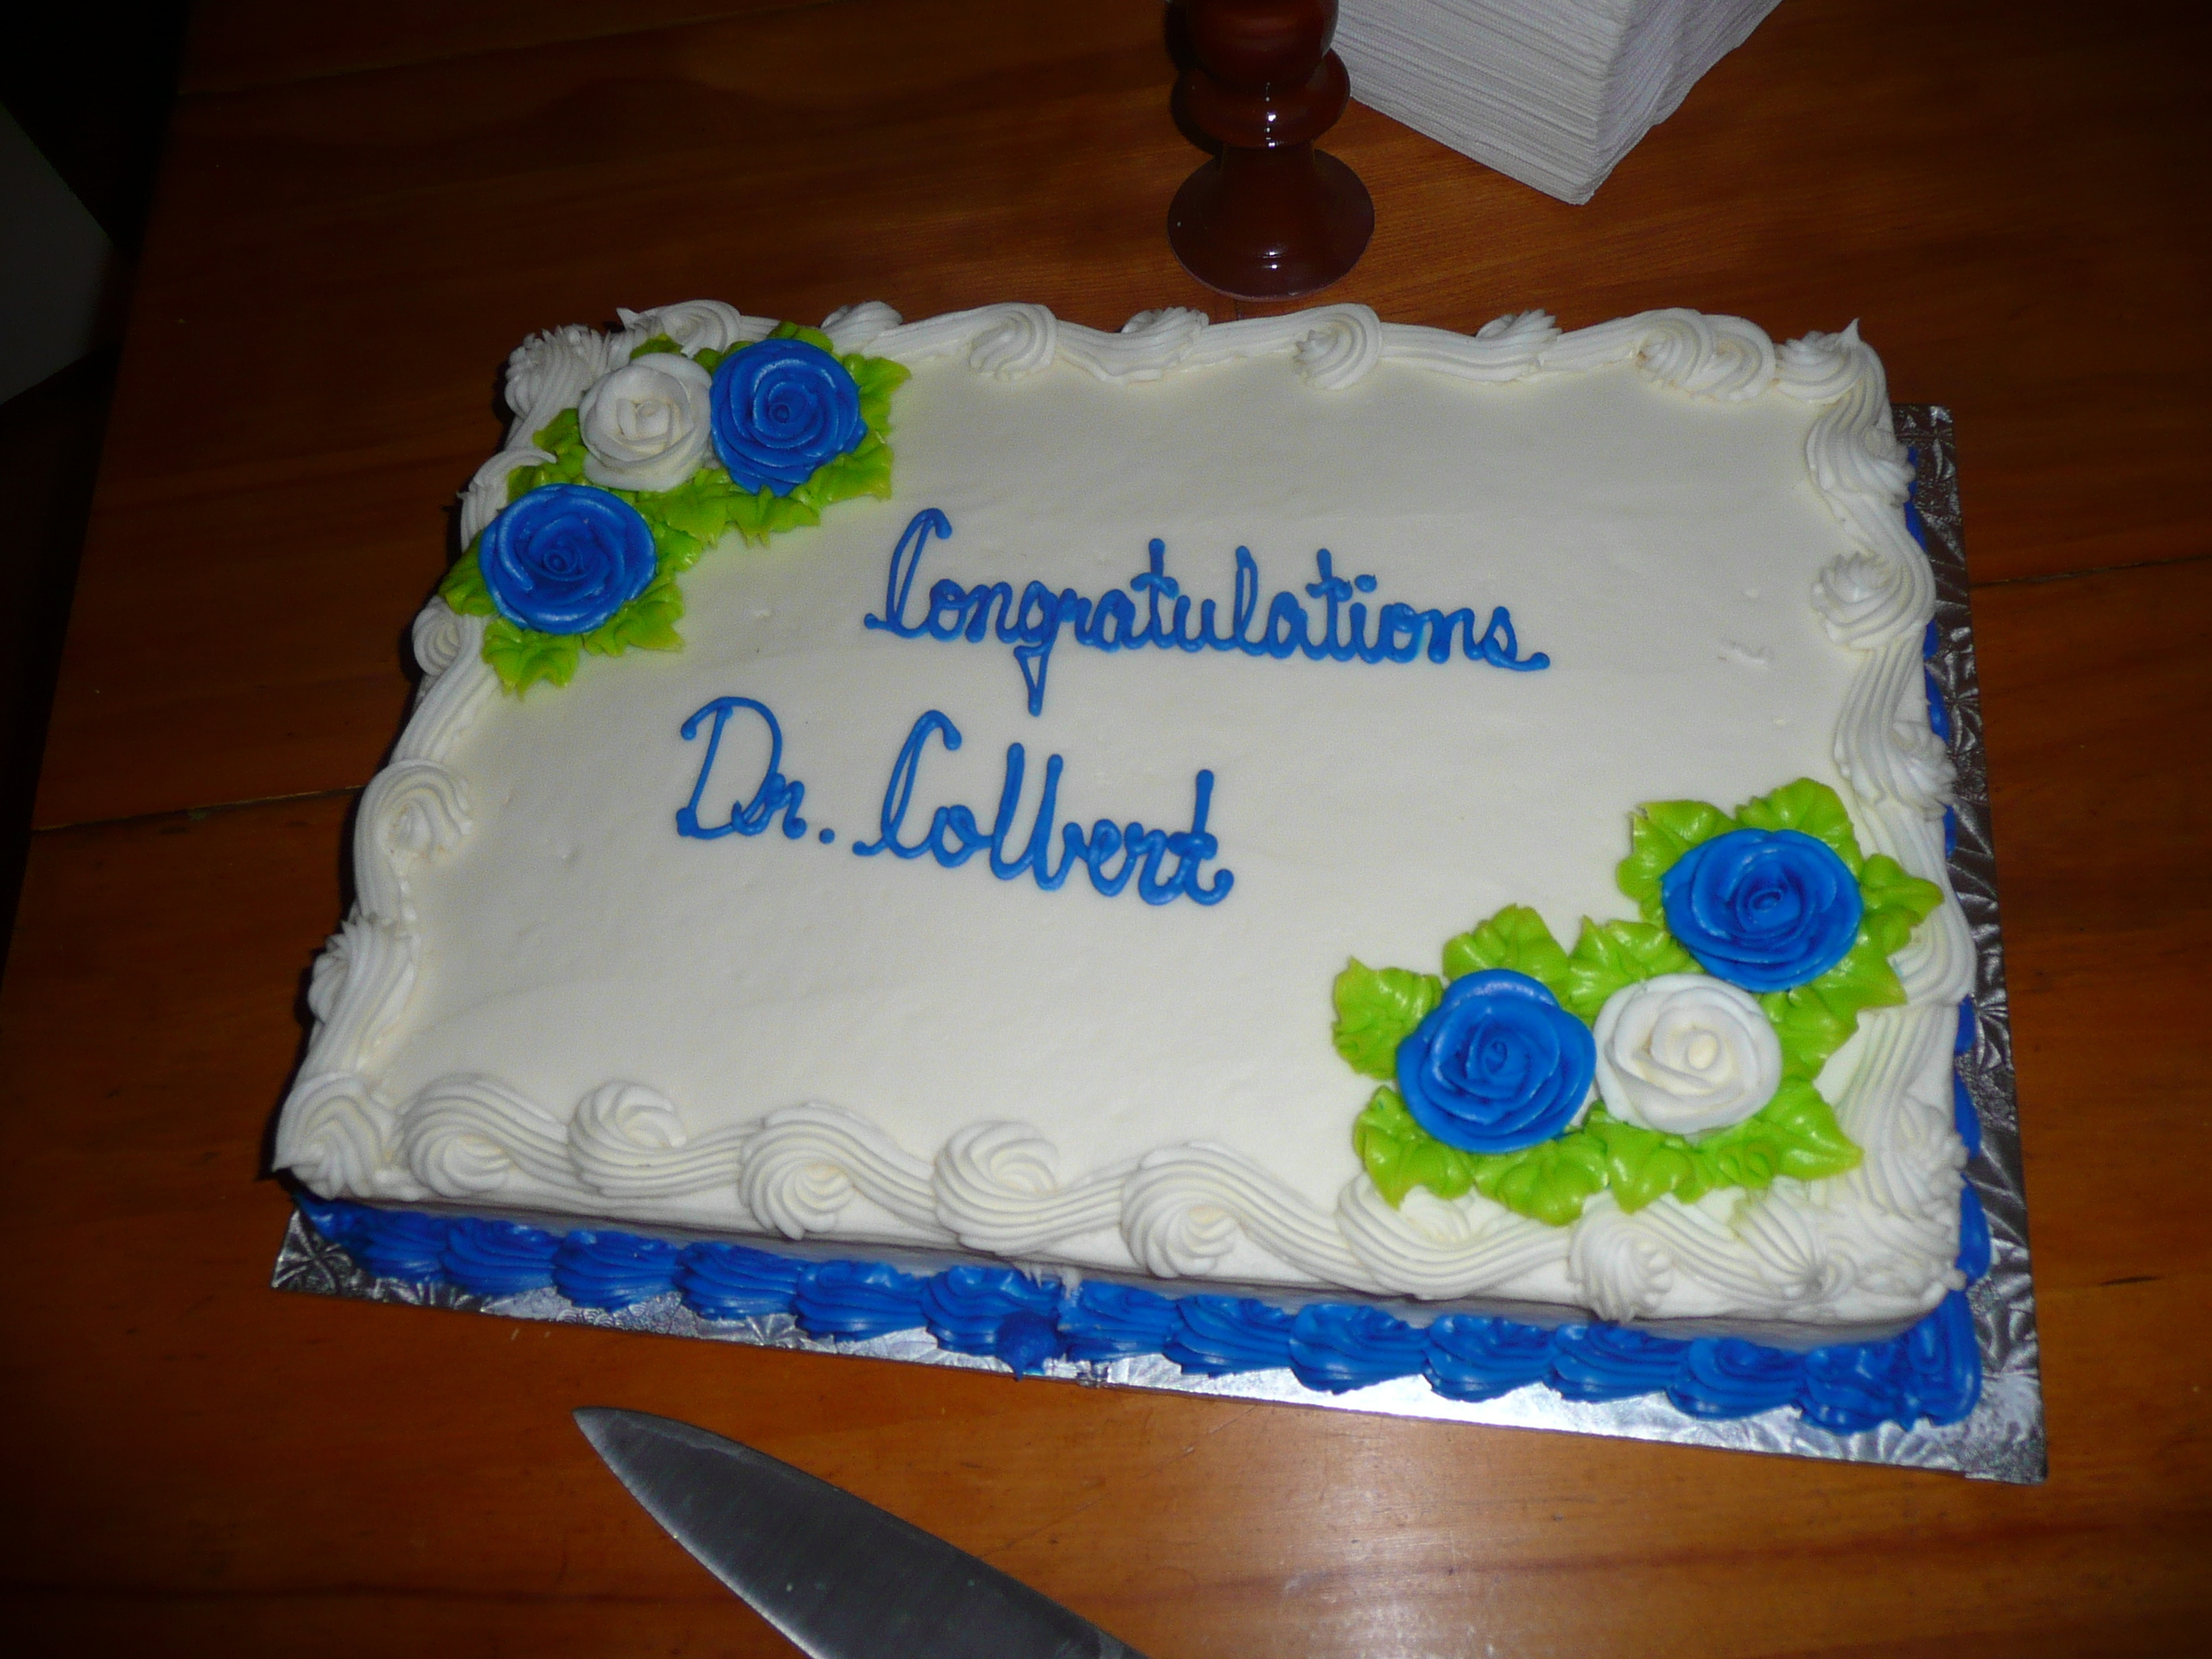 Phd defence party for the newly crowned Dr. Marie-Josee Colbert